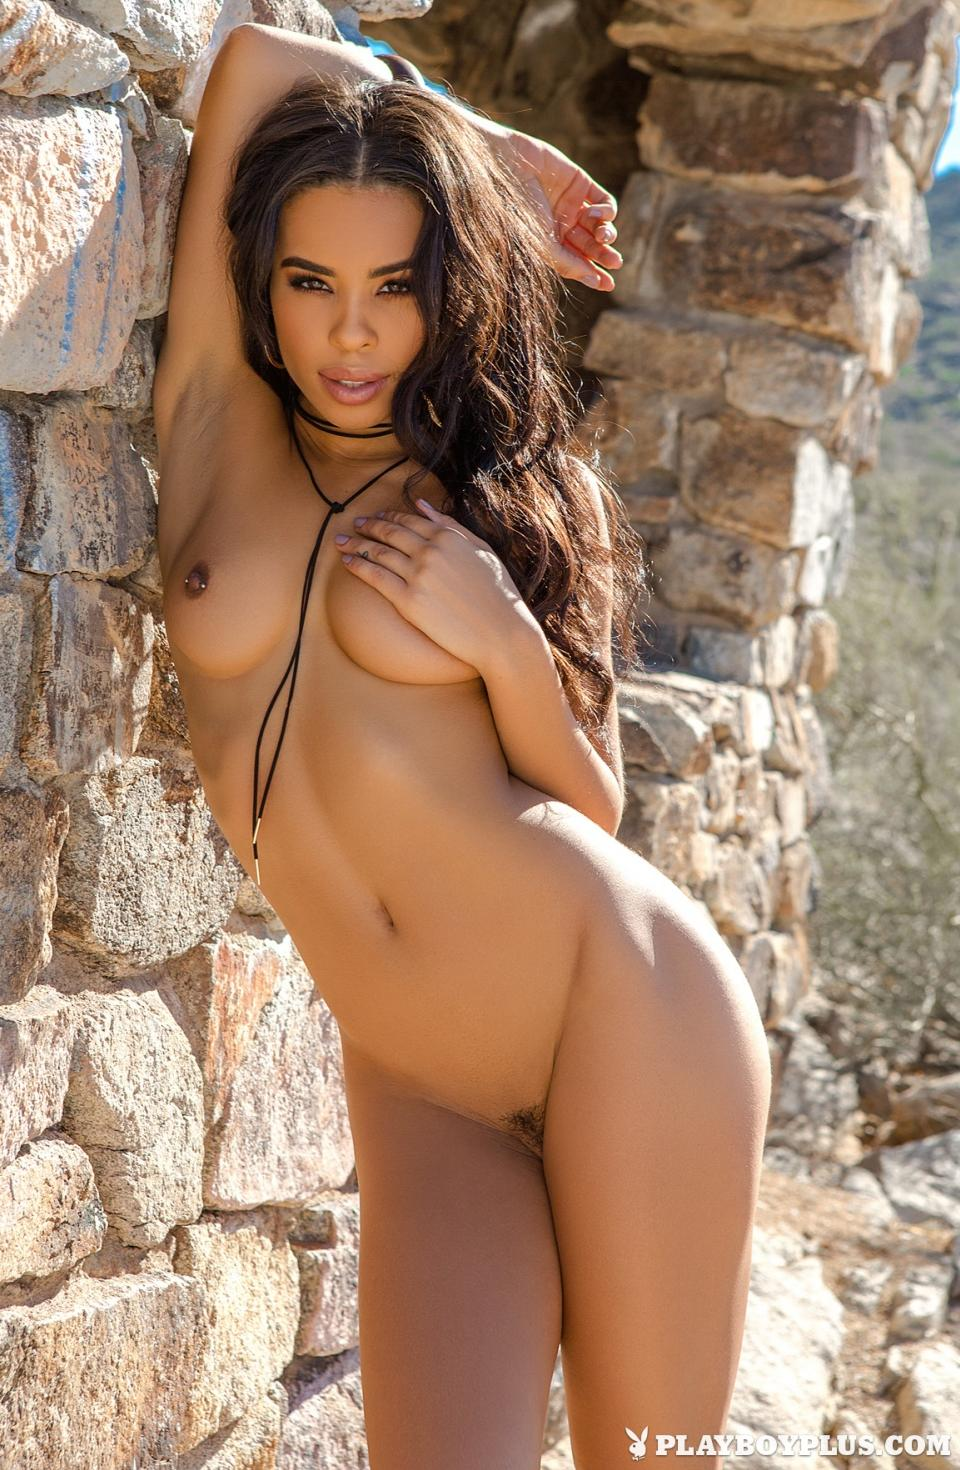 Briana Ashley Nude In Desert For Playboy 12